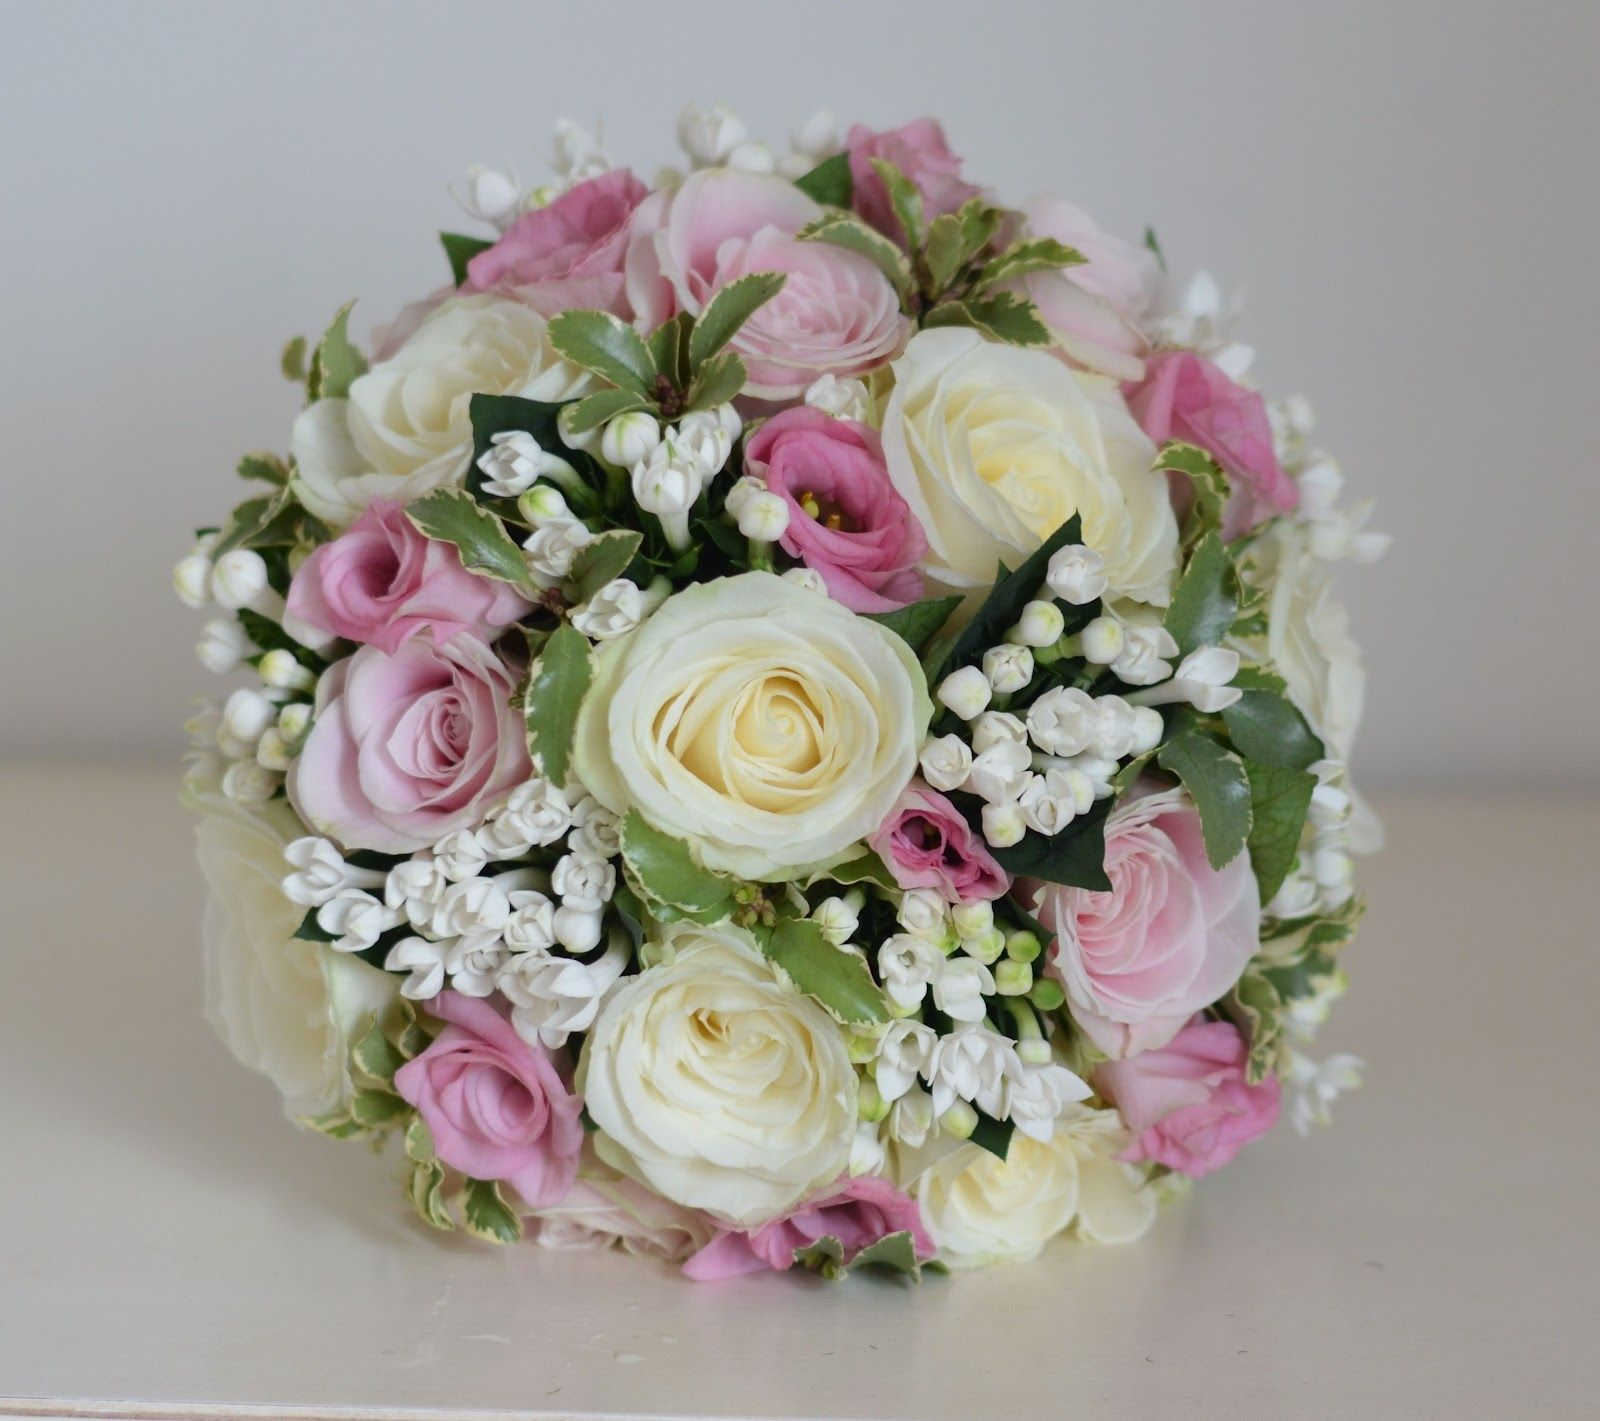 Rose bouquets bouquet of ivory and pale pink roses with jades classic pink and white wedding flowers solent spa dhlflorist Image collections